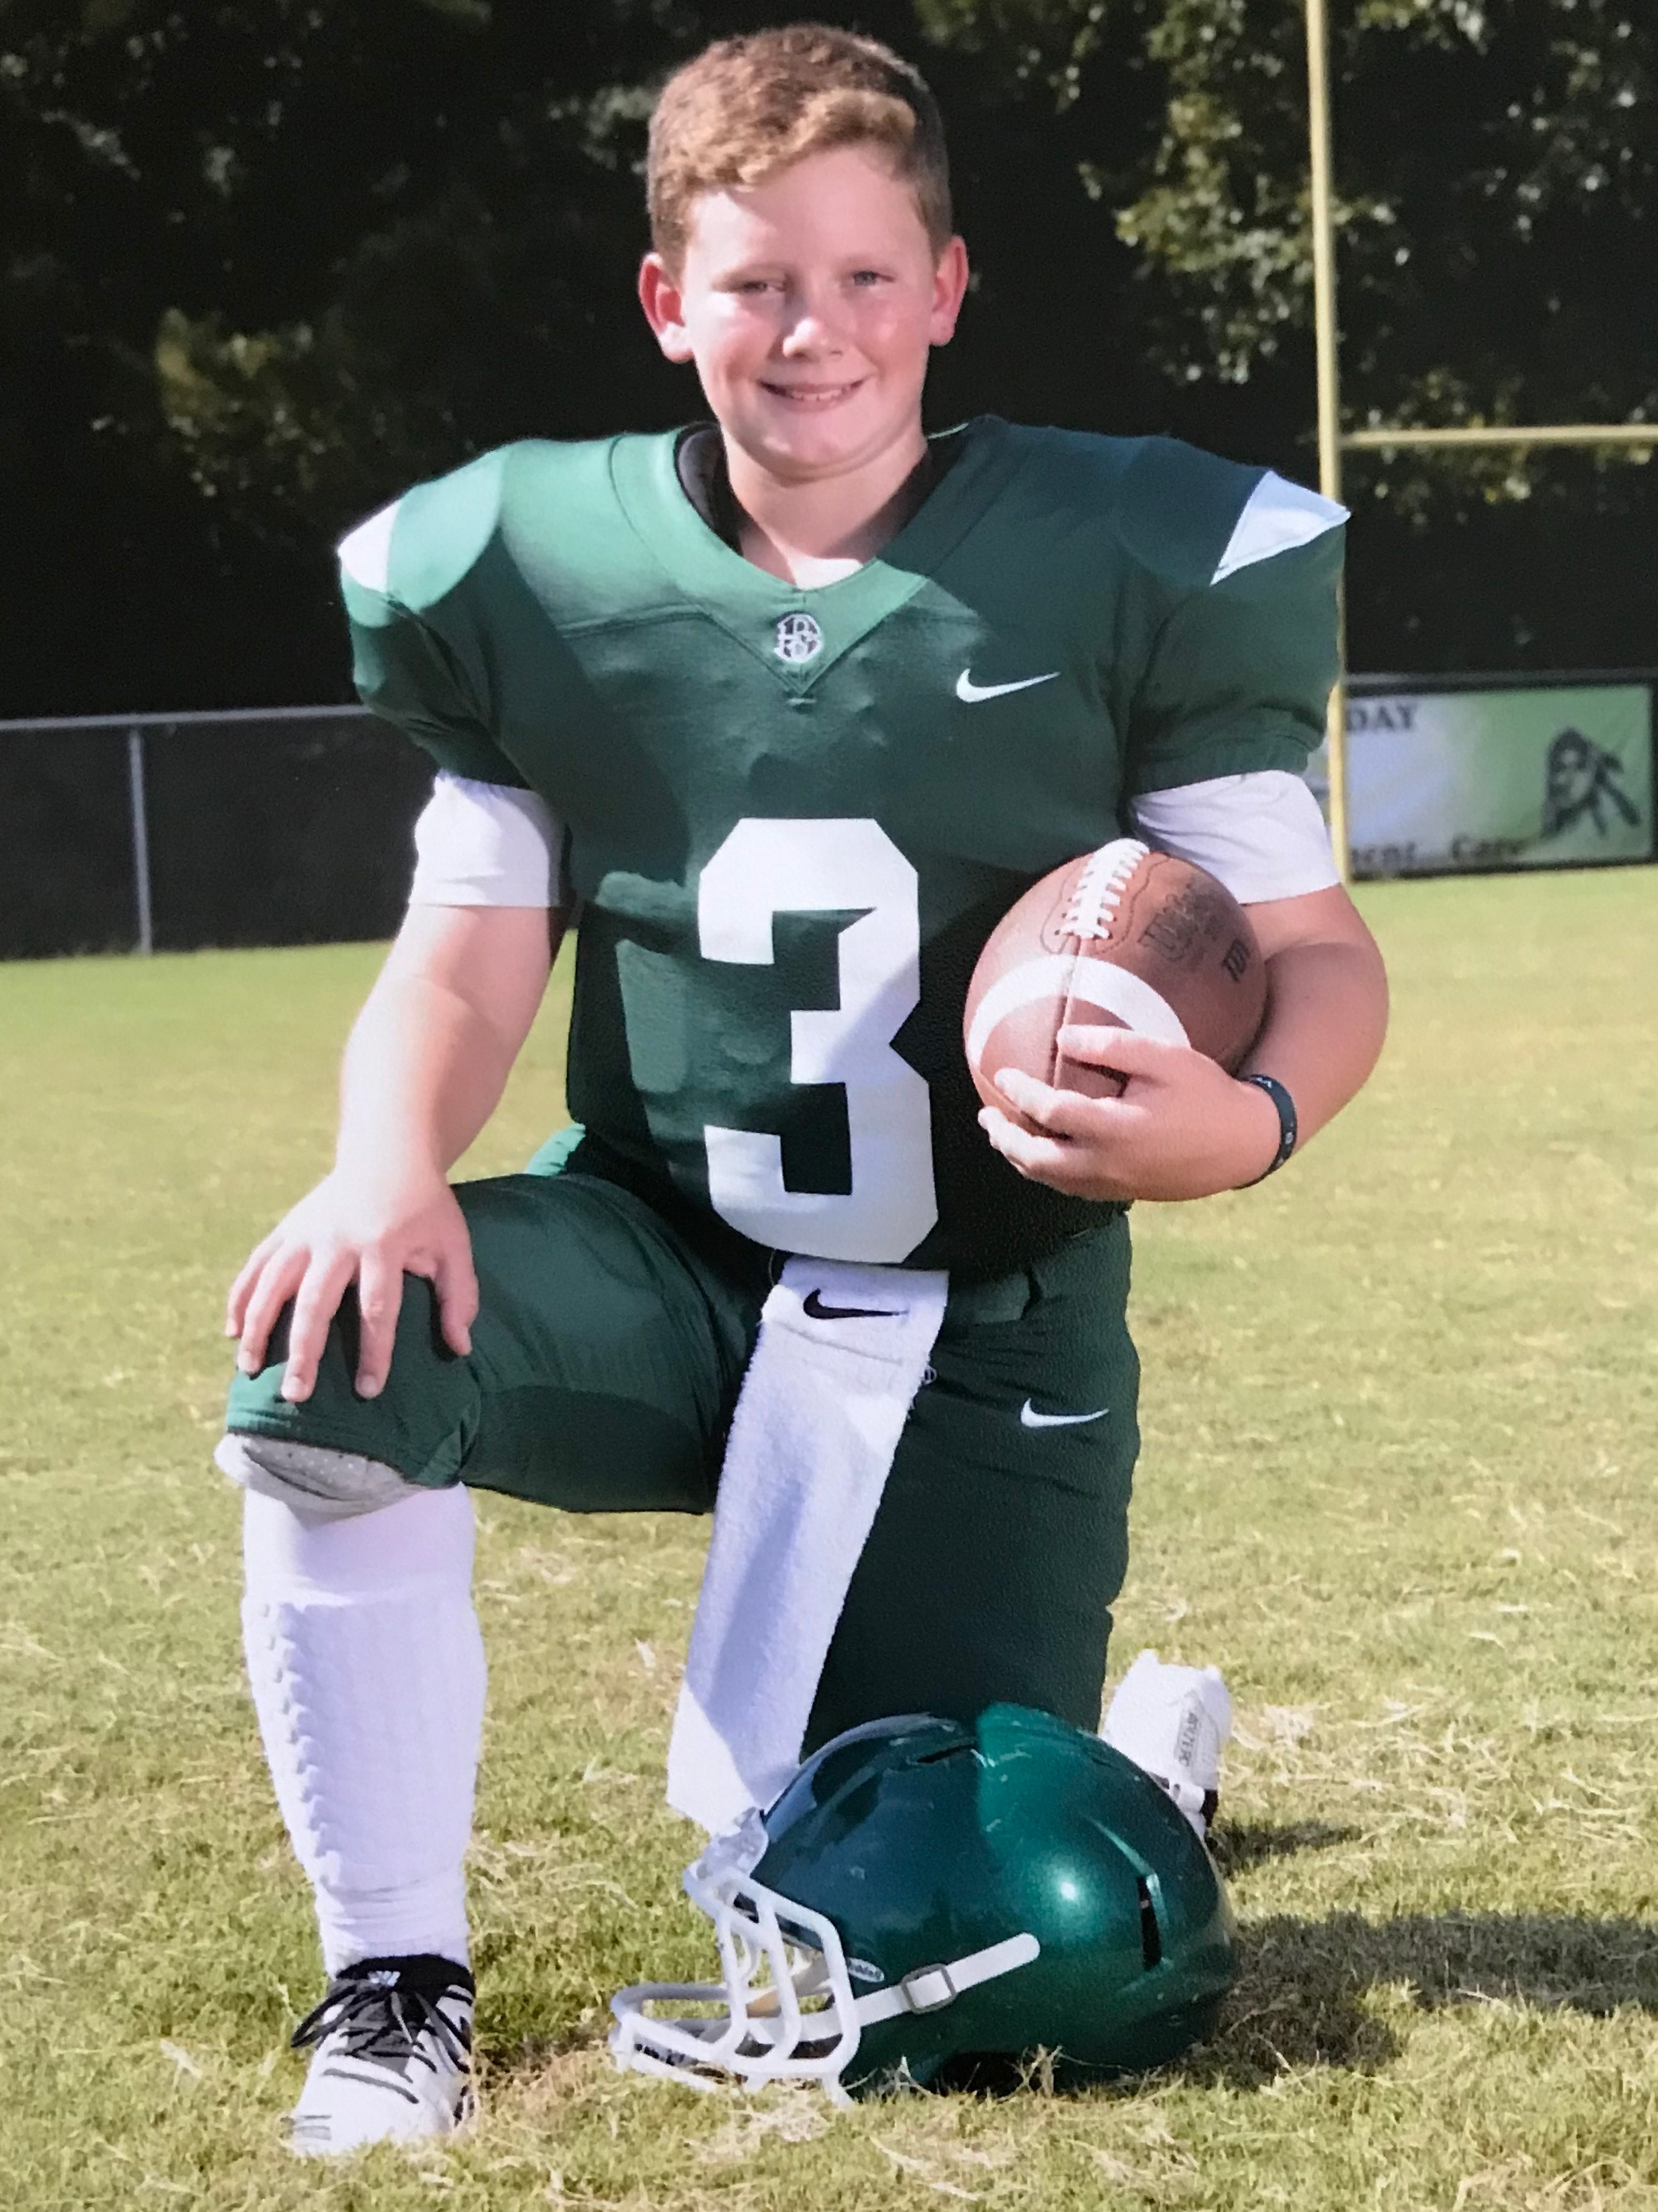 BEN LOGAN - Our athlete of the month this month is Booth Middle Schooler, Ben Logan. He's entering eighth grade and plays football, basketball and golf. This summer he's a part of a summer swim league.Describe training at goperformance in three words: Worthwhile. Gratifying. Fun.